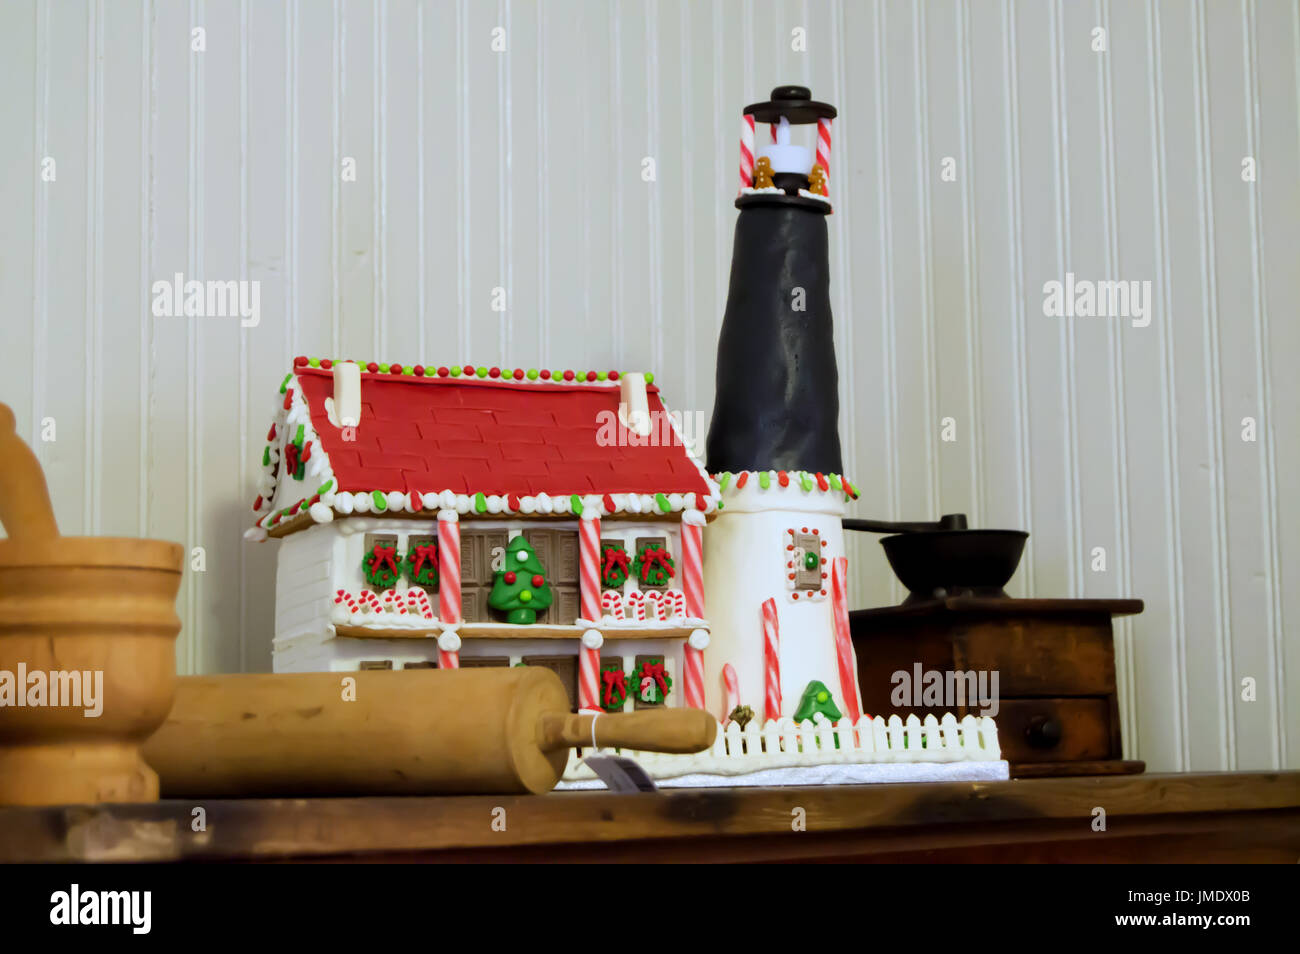 A Model Of The Pensacola Lighthouse In Gingerbread And Fondue House